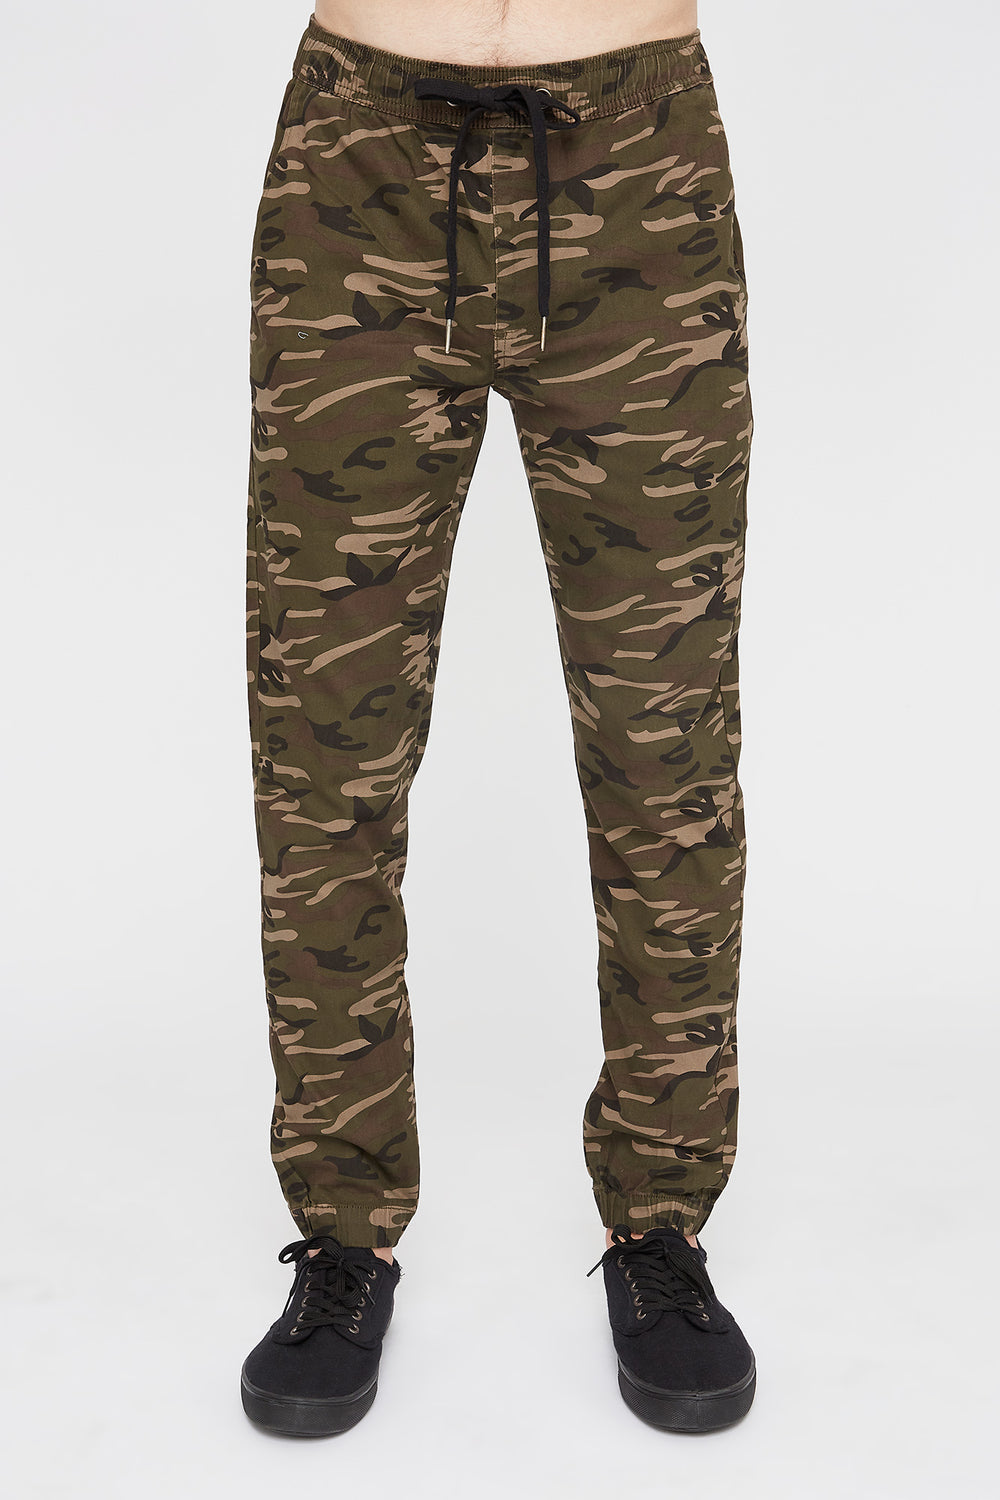 West49 Mens Camo Jogger Camouflage